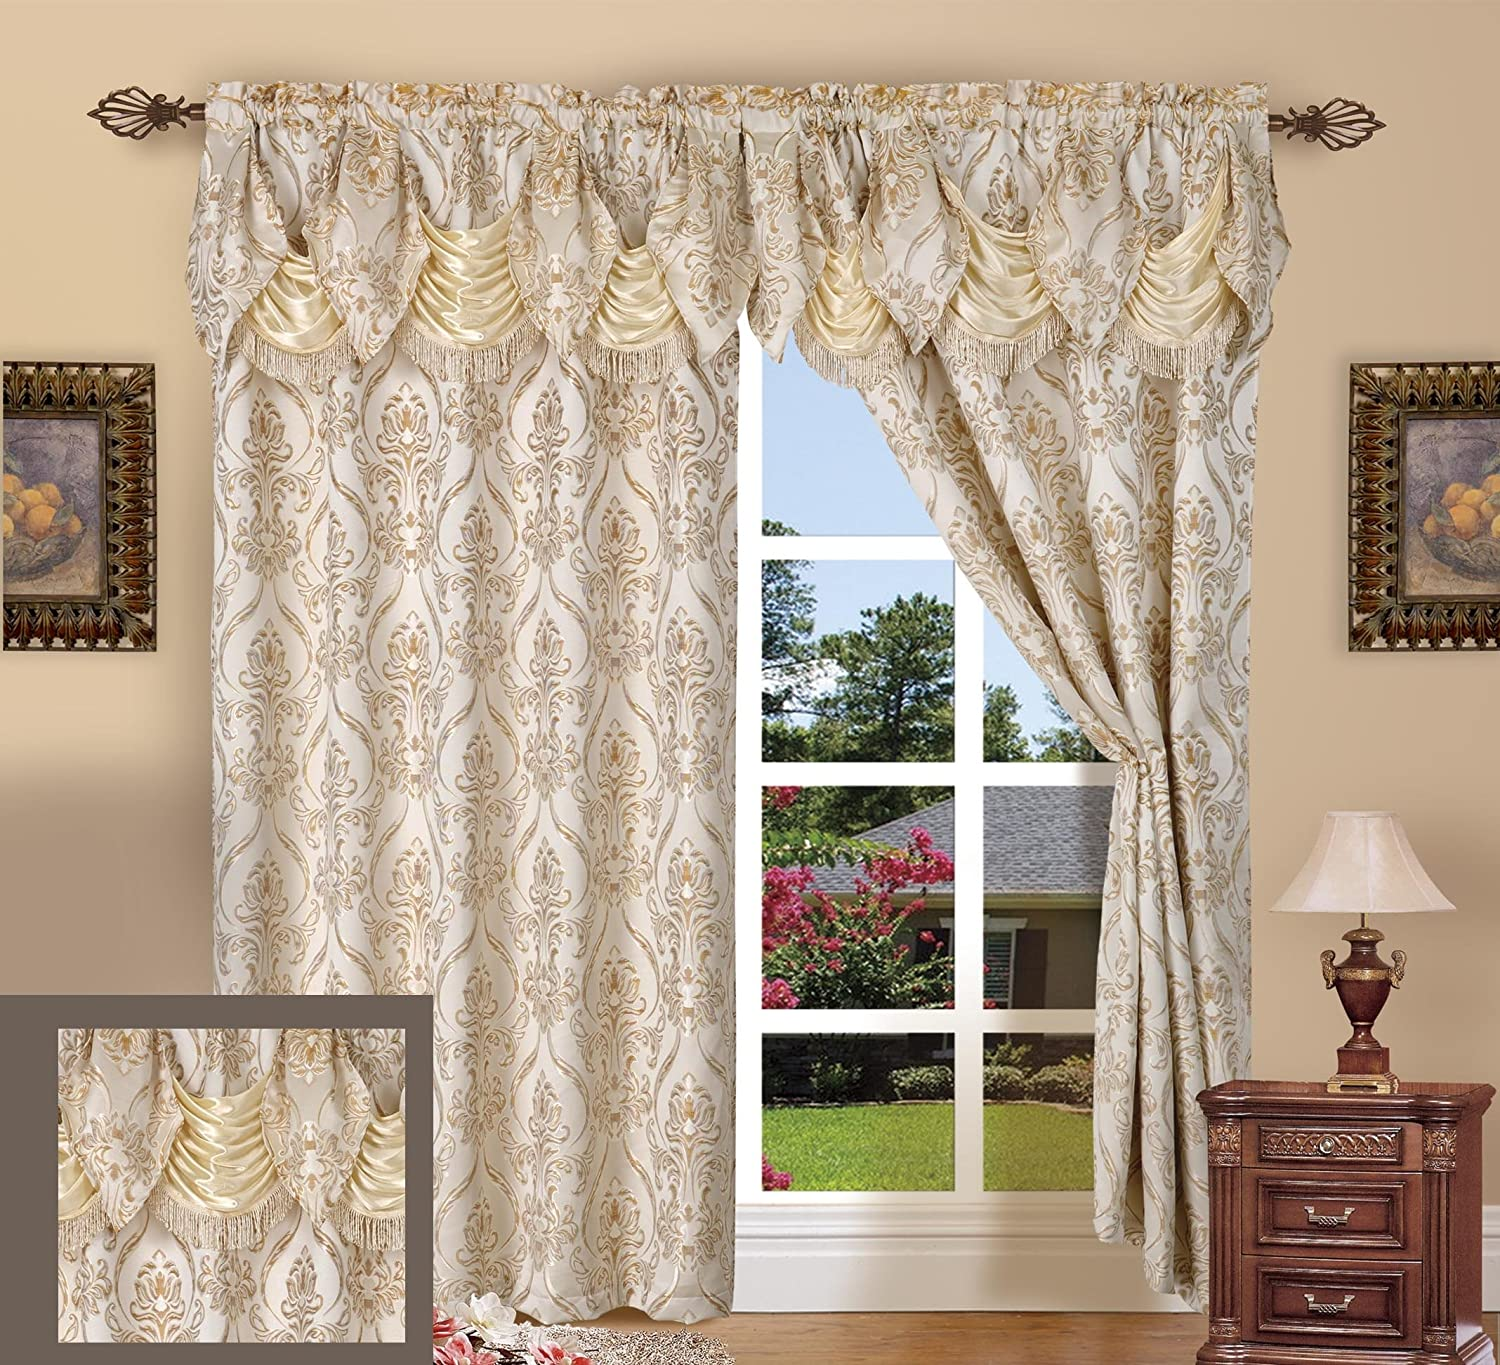 full curtains valances with pleasant attached wonderful gri thrilling noteworthy curtain tango decoration surprising ideas of patterns valance drapes scarfs size sheer panel and